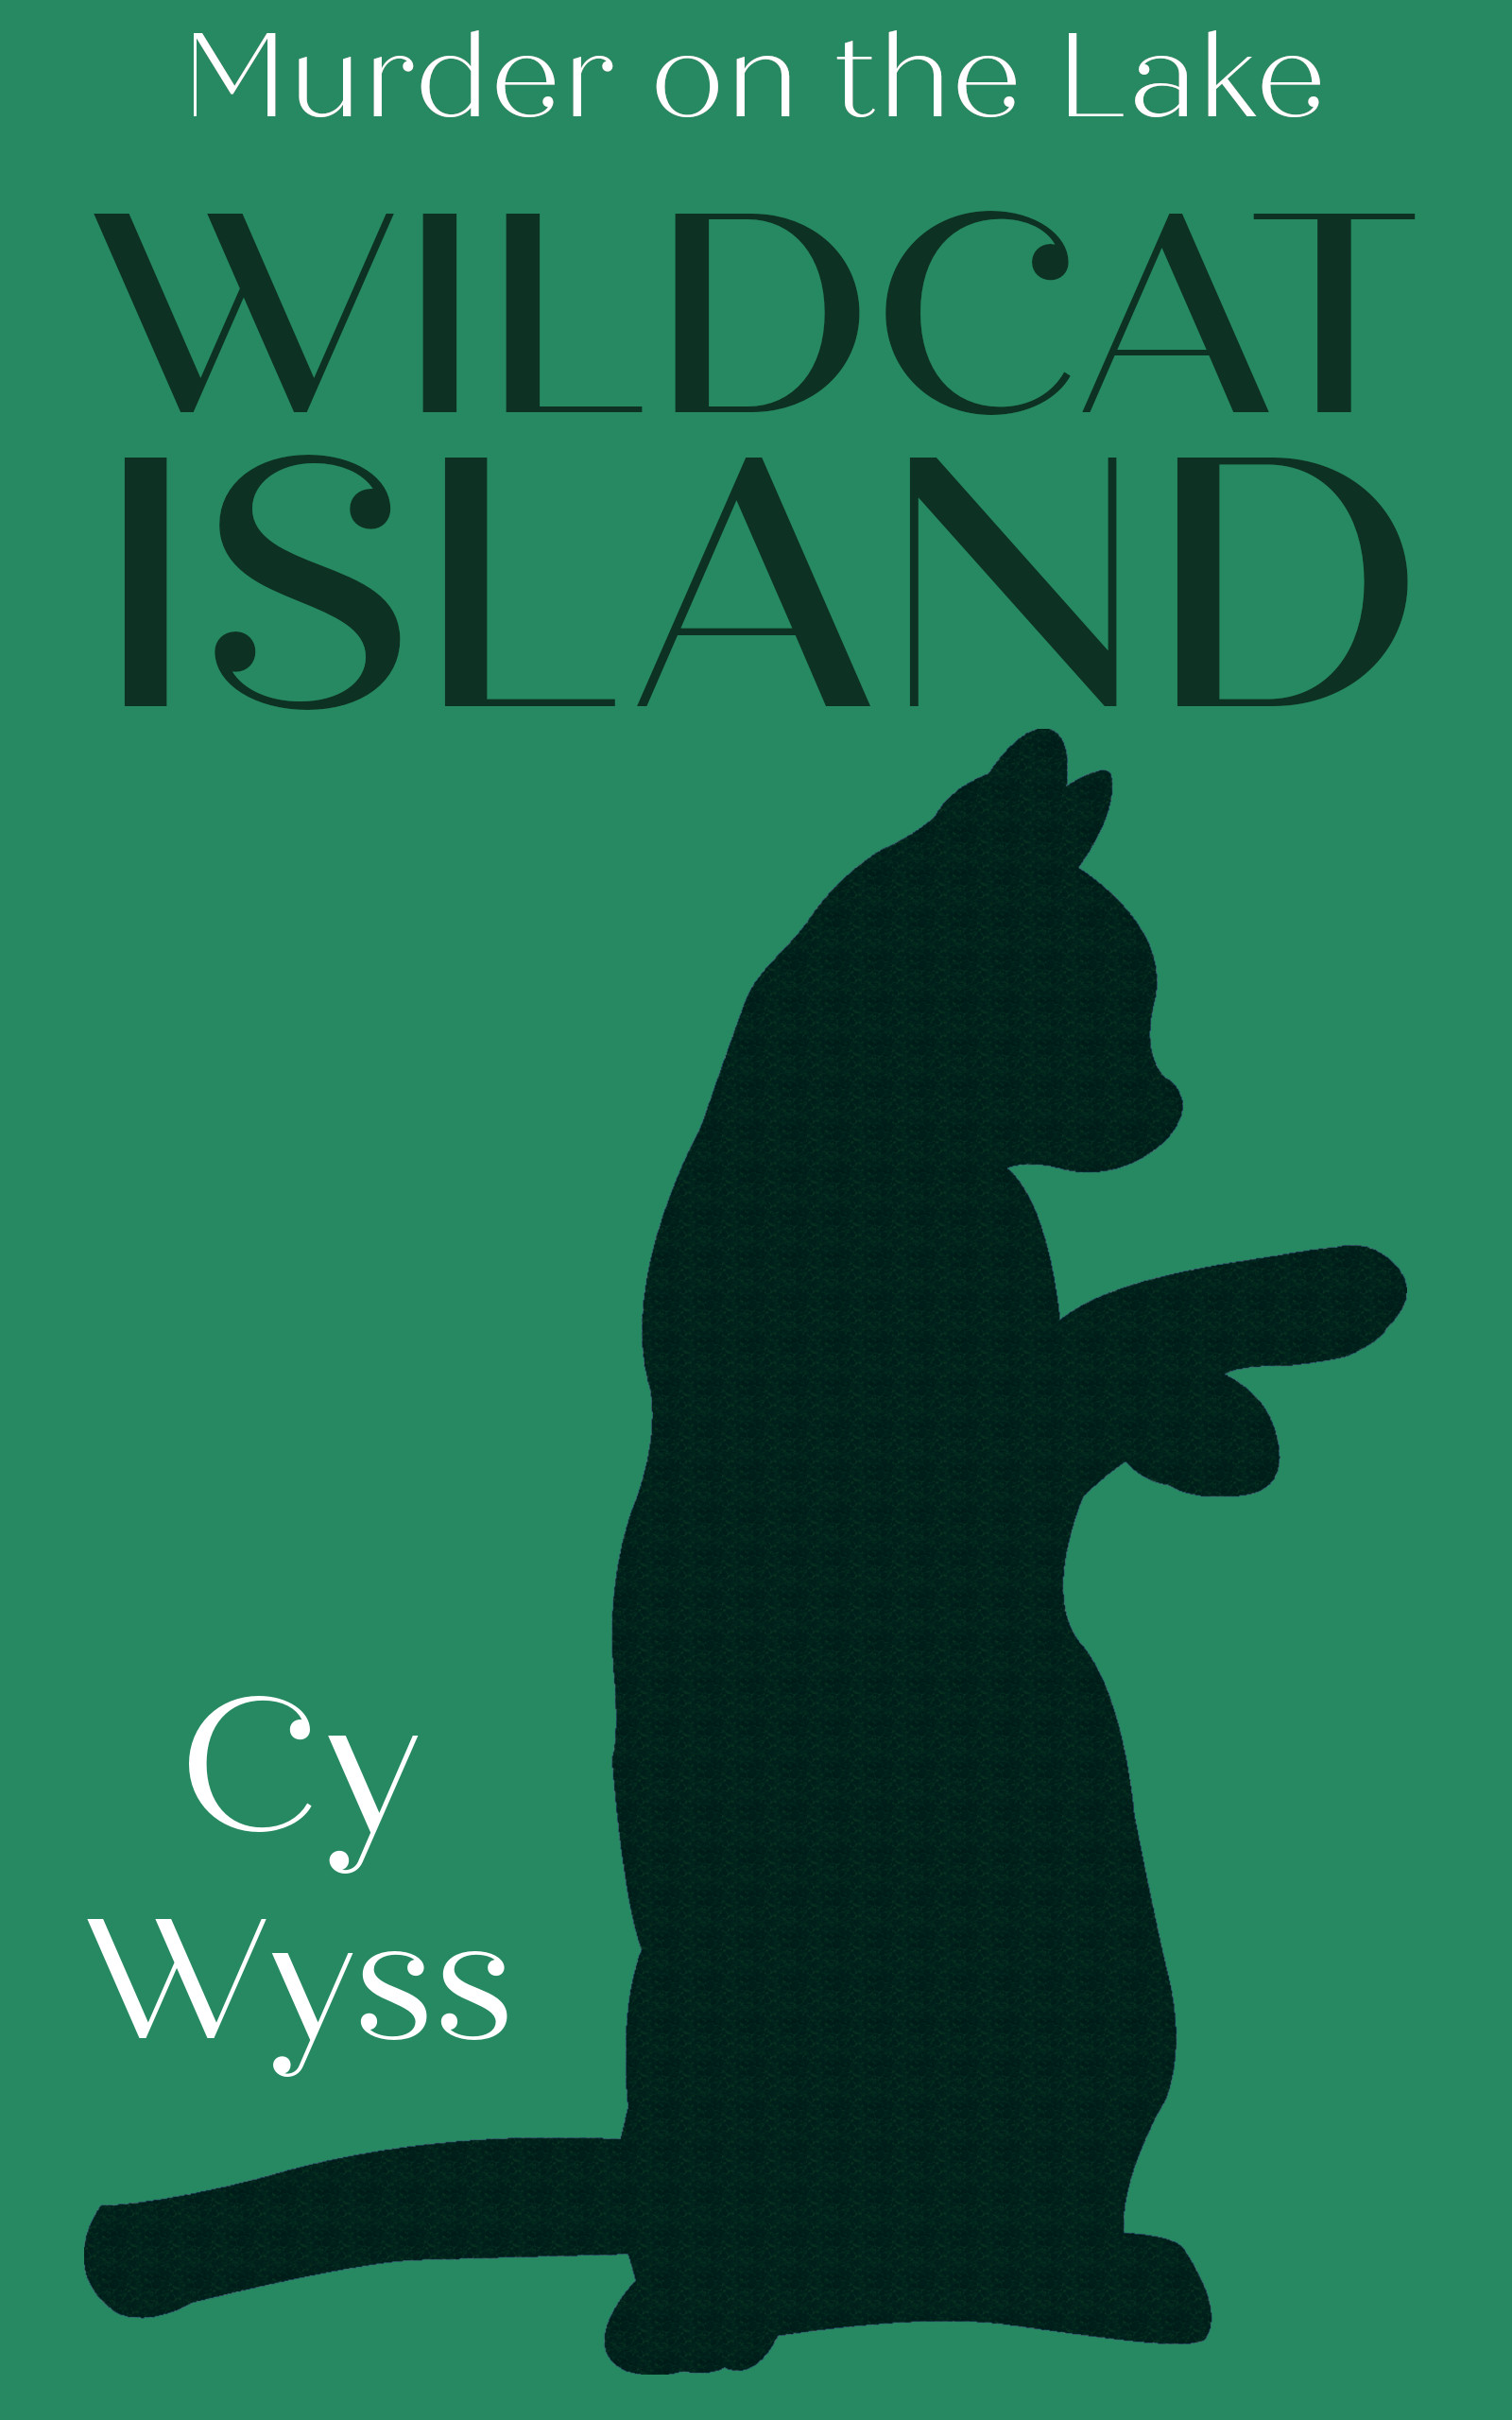 Wildcat Island: Murder on the Lake by Cy Wyss